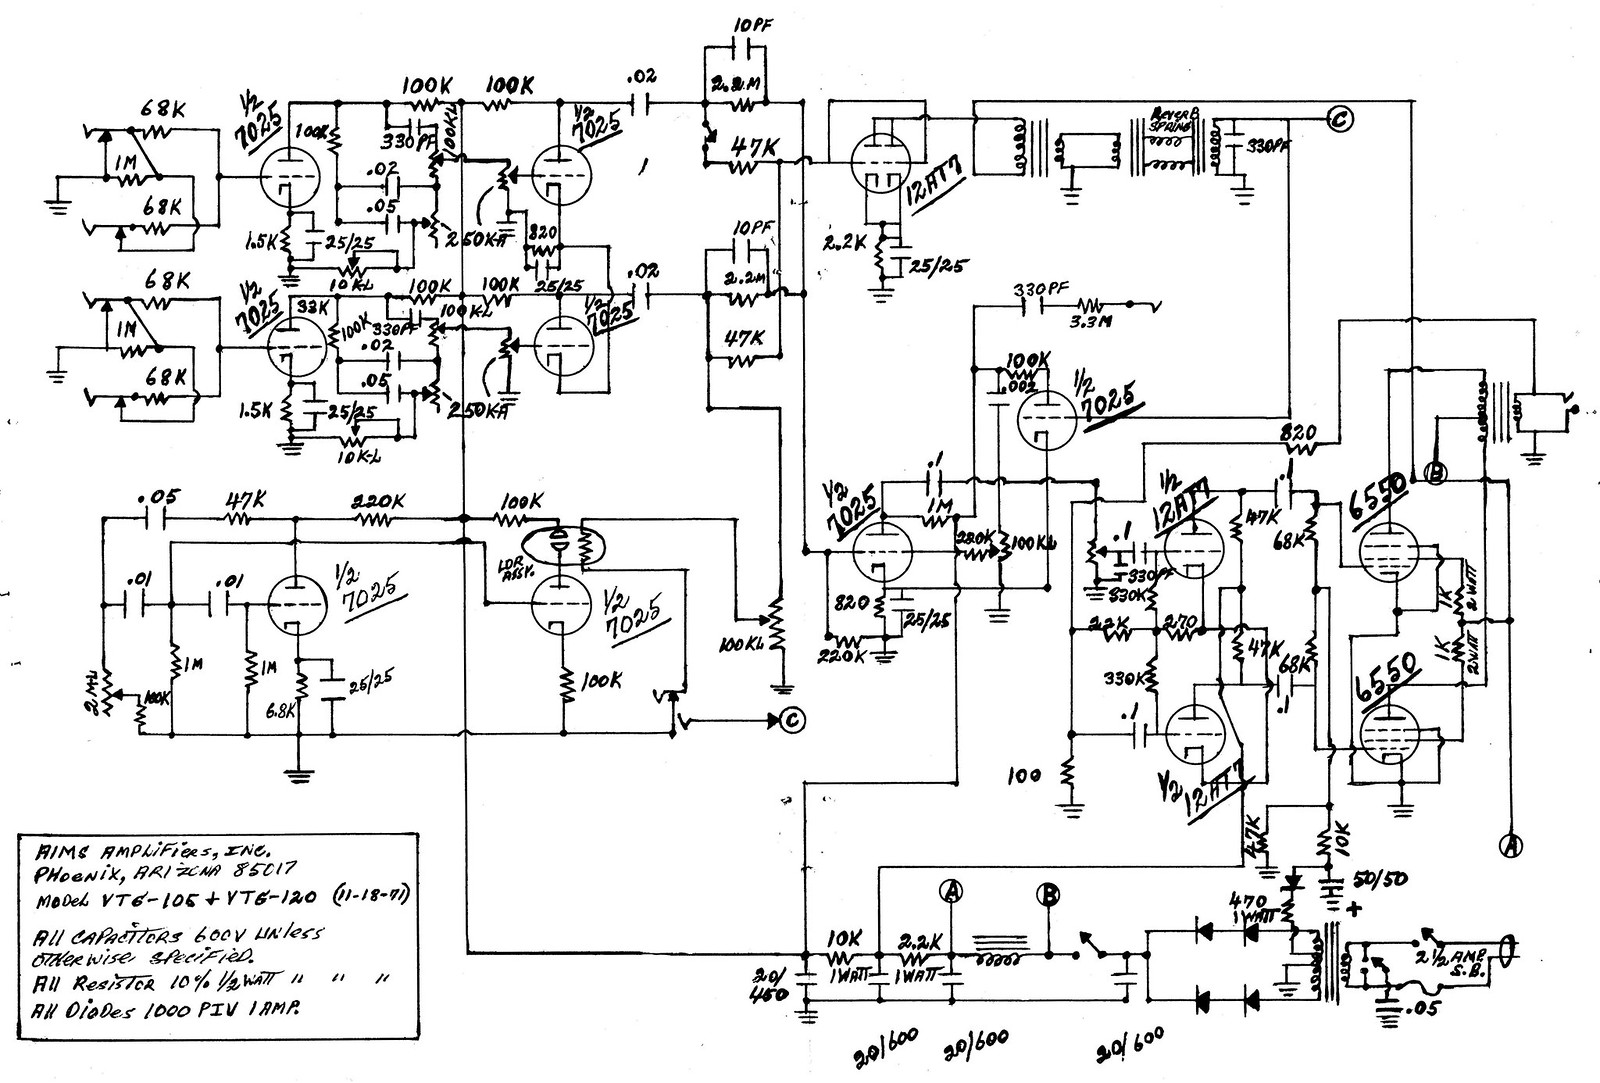 hight resolution of doerr compressor motor lr22132 wiring diagram wiring library14628046201 1b8df4668e h doerr single phase wiring diagram wiring diagrams doerr